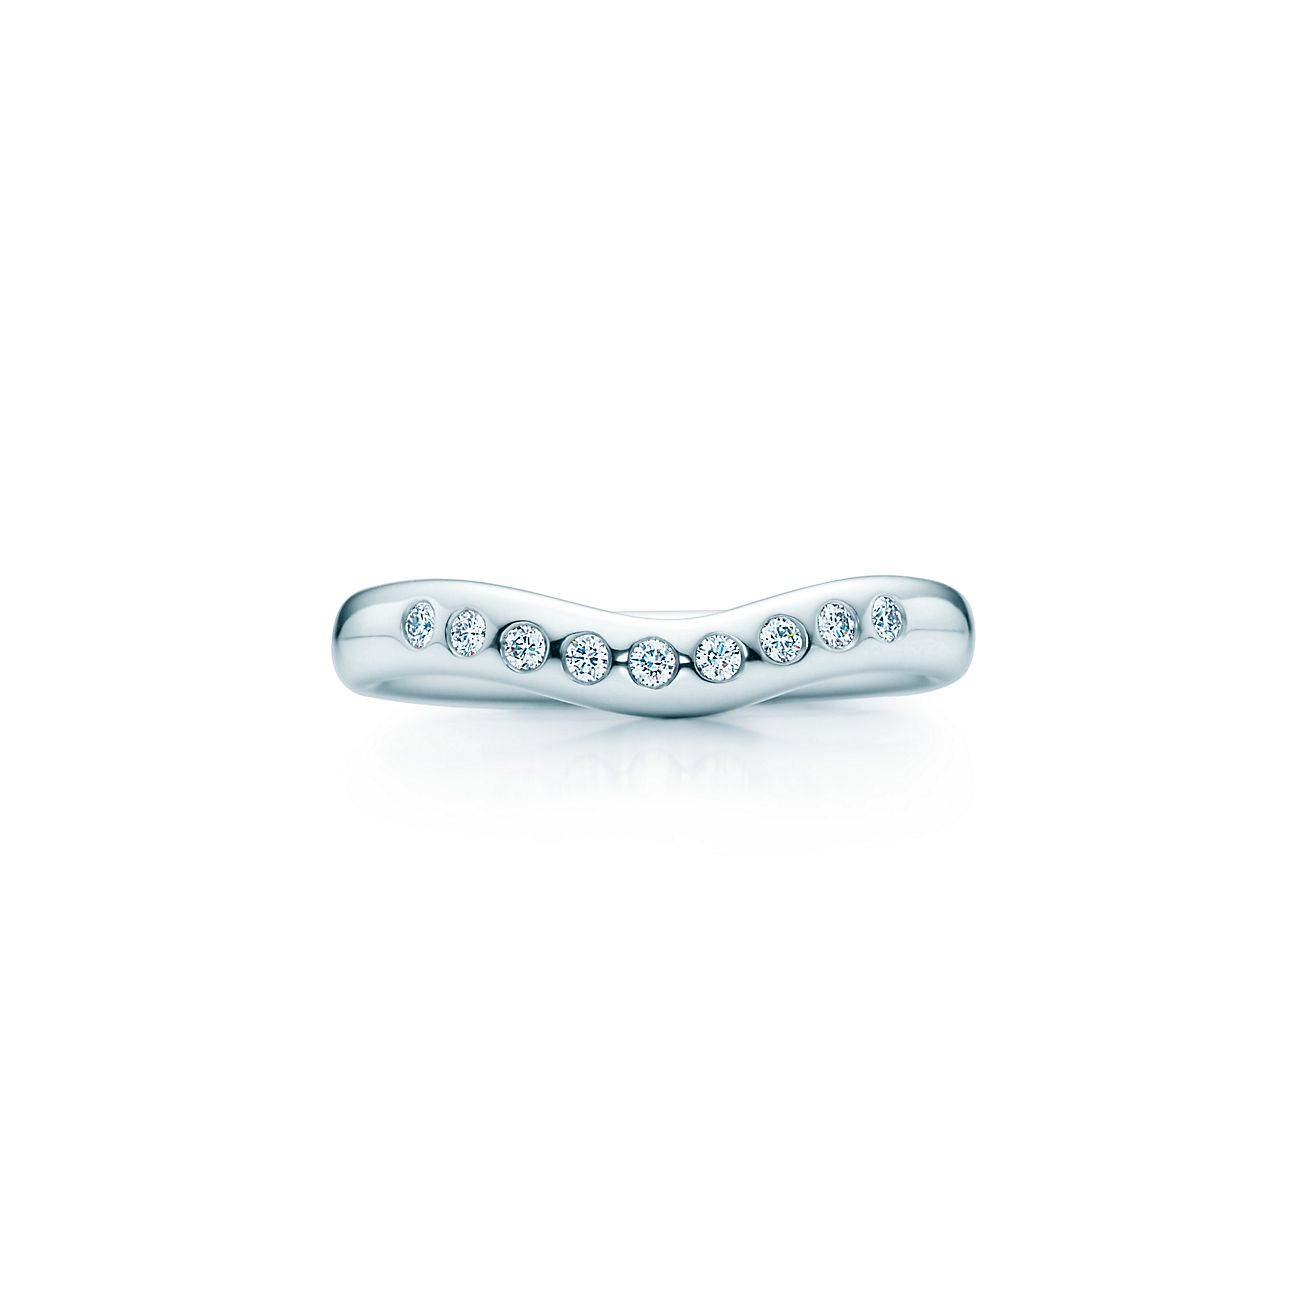 Elsa Peretti wedding band ring with diamonds in platinum wide